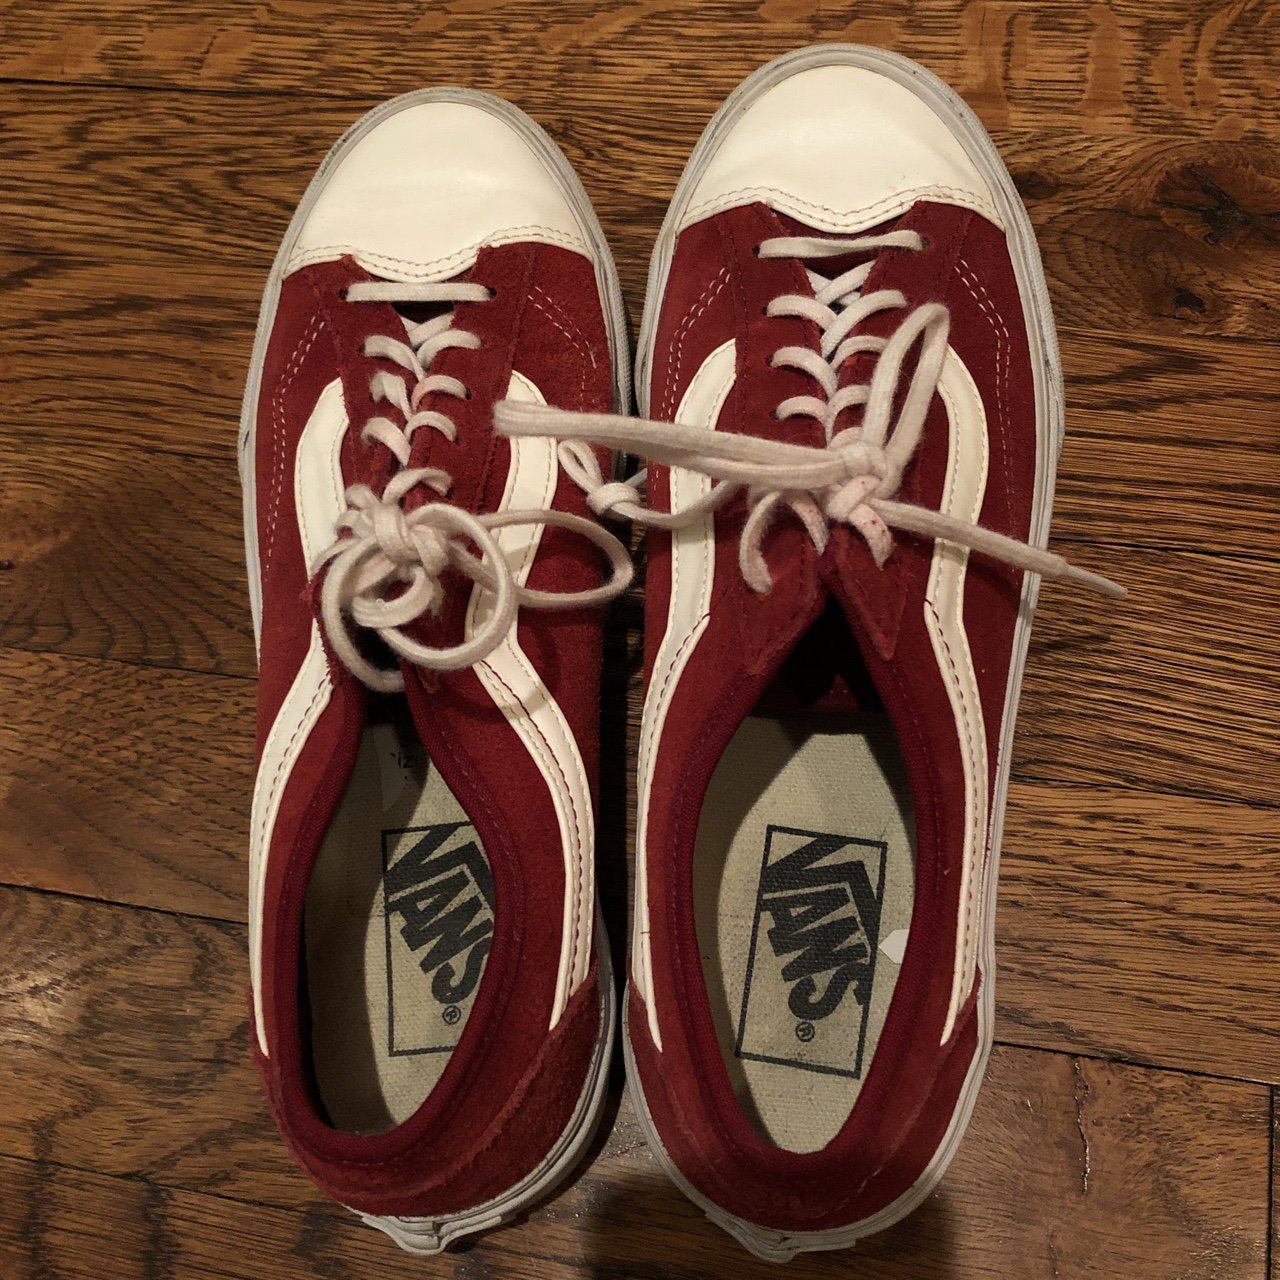 38a2dc33055d Red Vans size 8 sneakers! I only wore them a few times and a - Depop